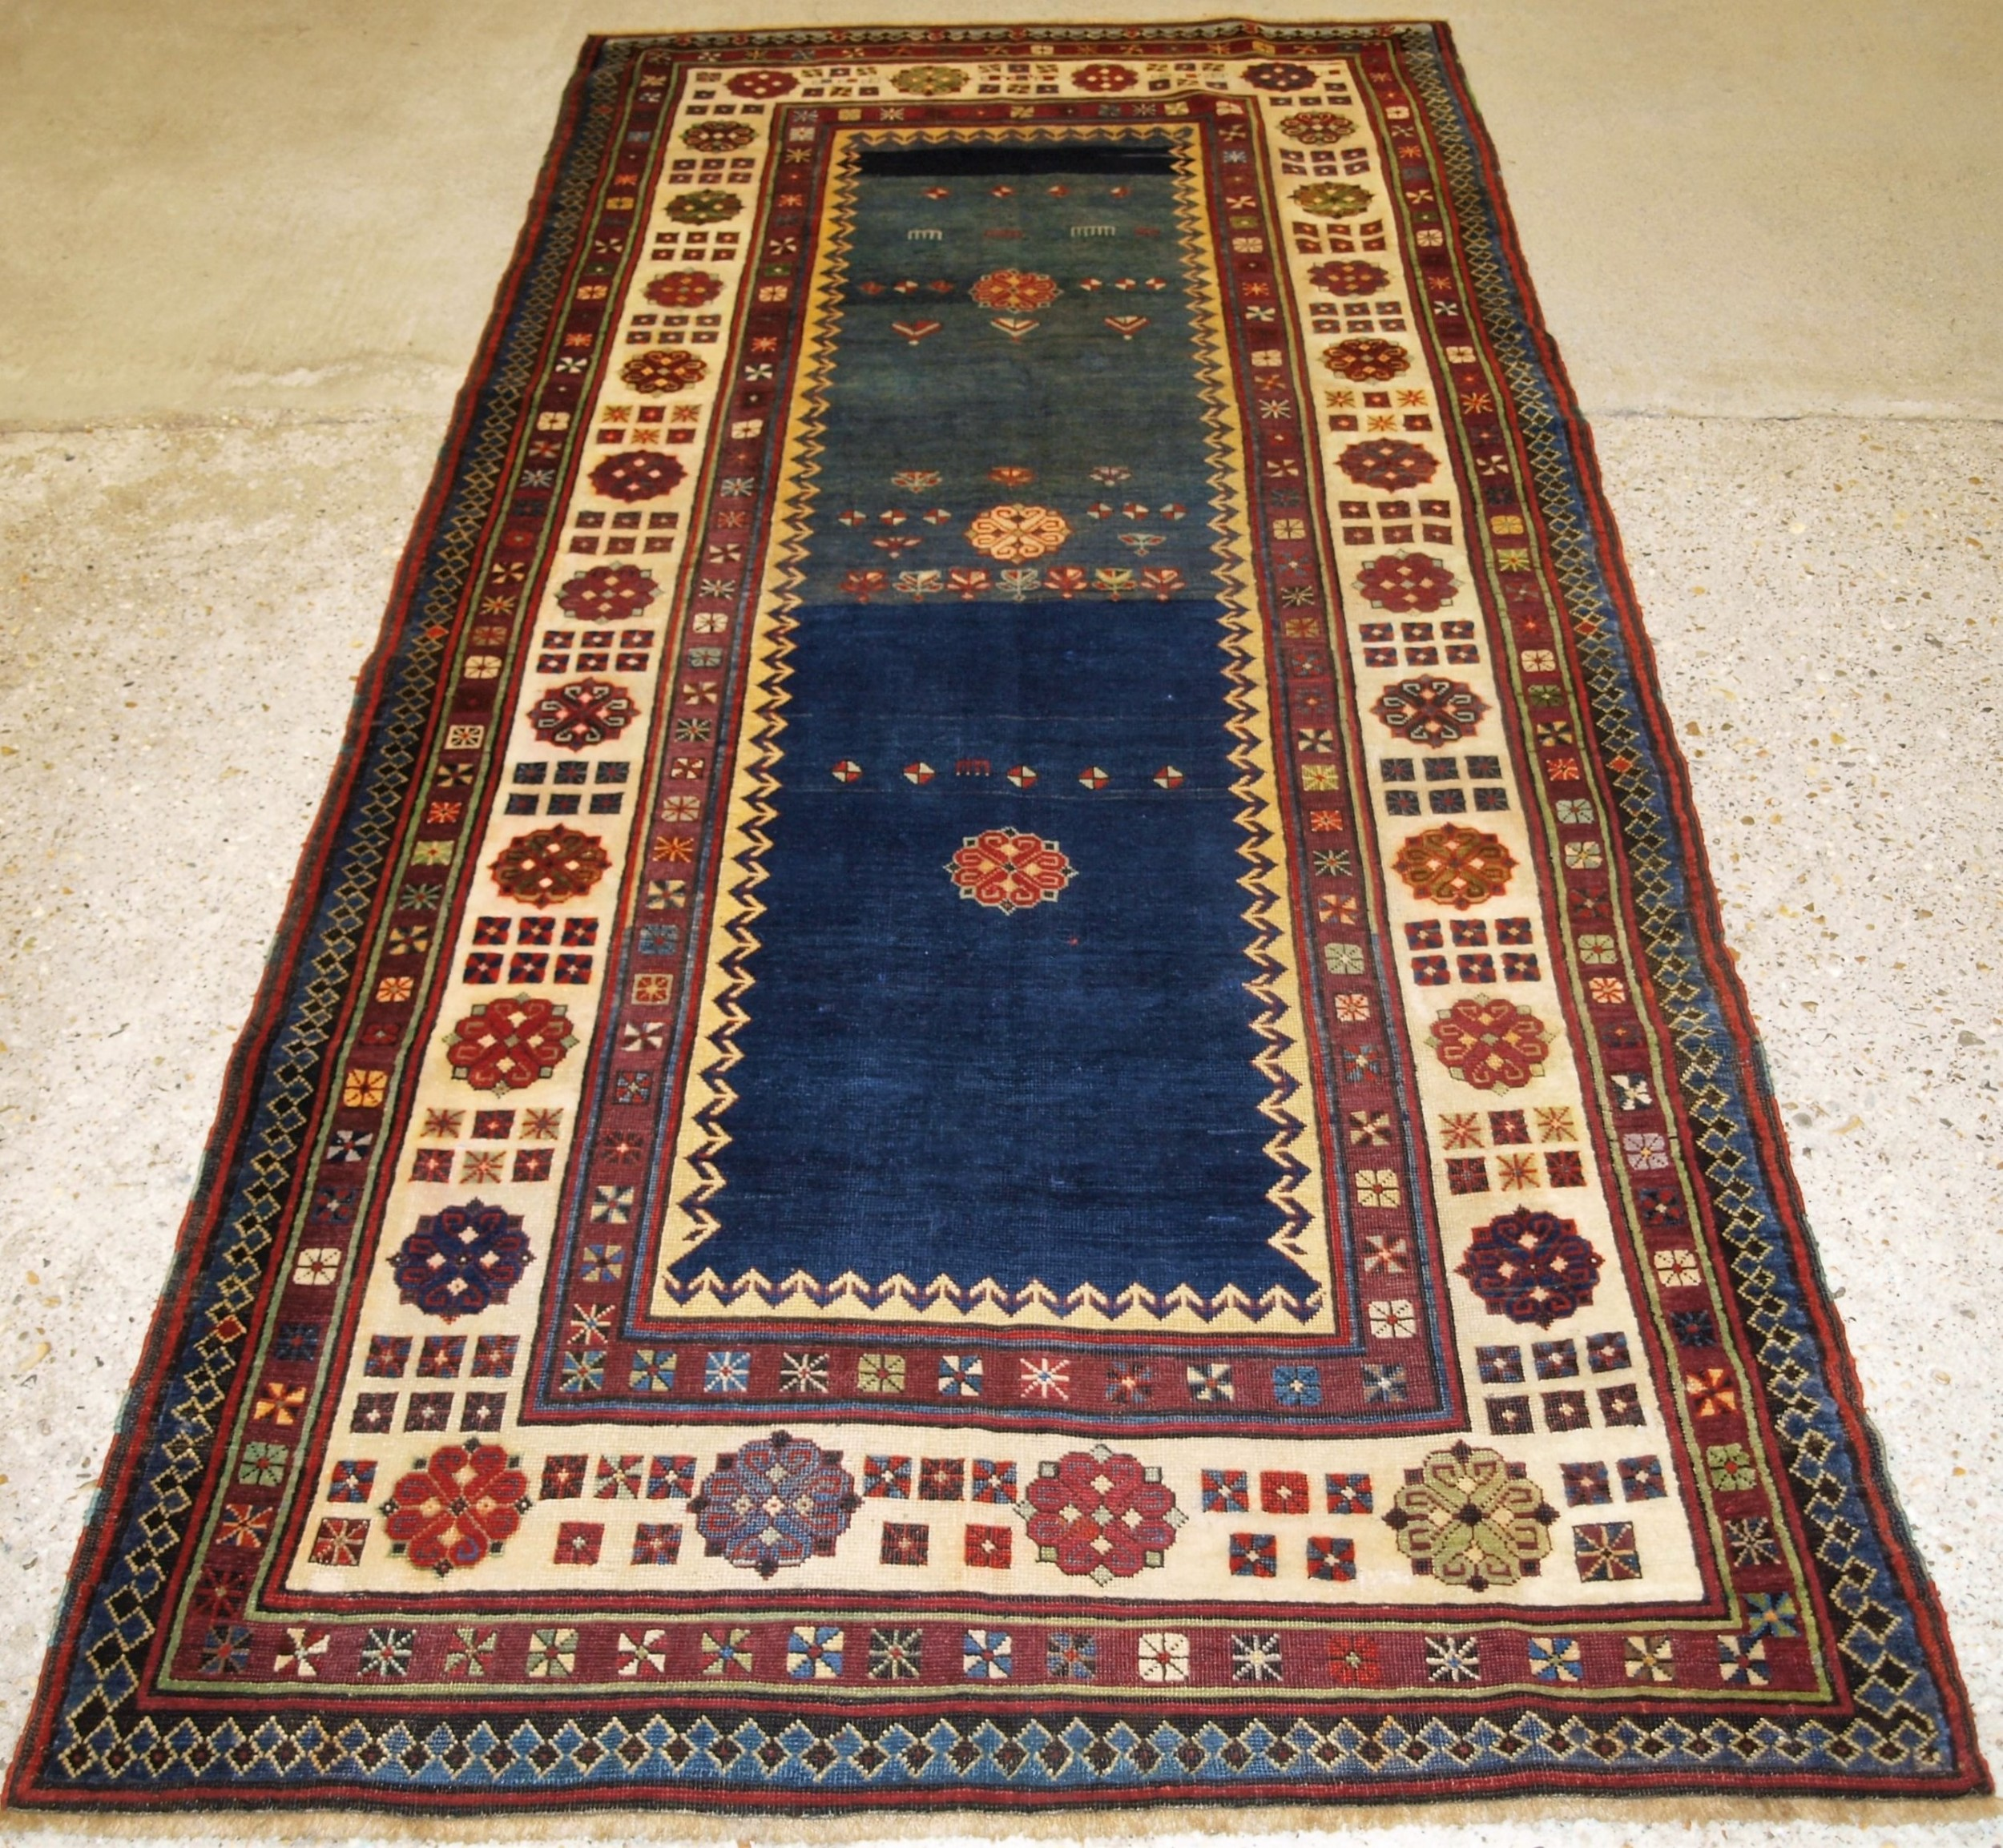 antique caucasian talish long rug abrashed blue field late 19th century